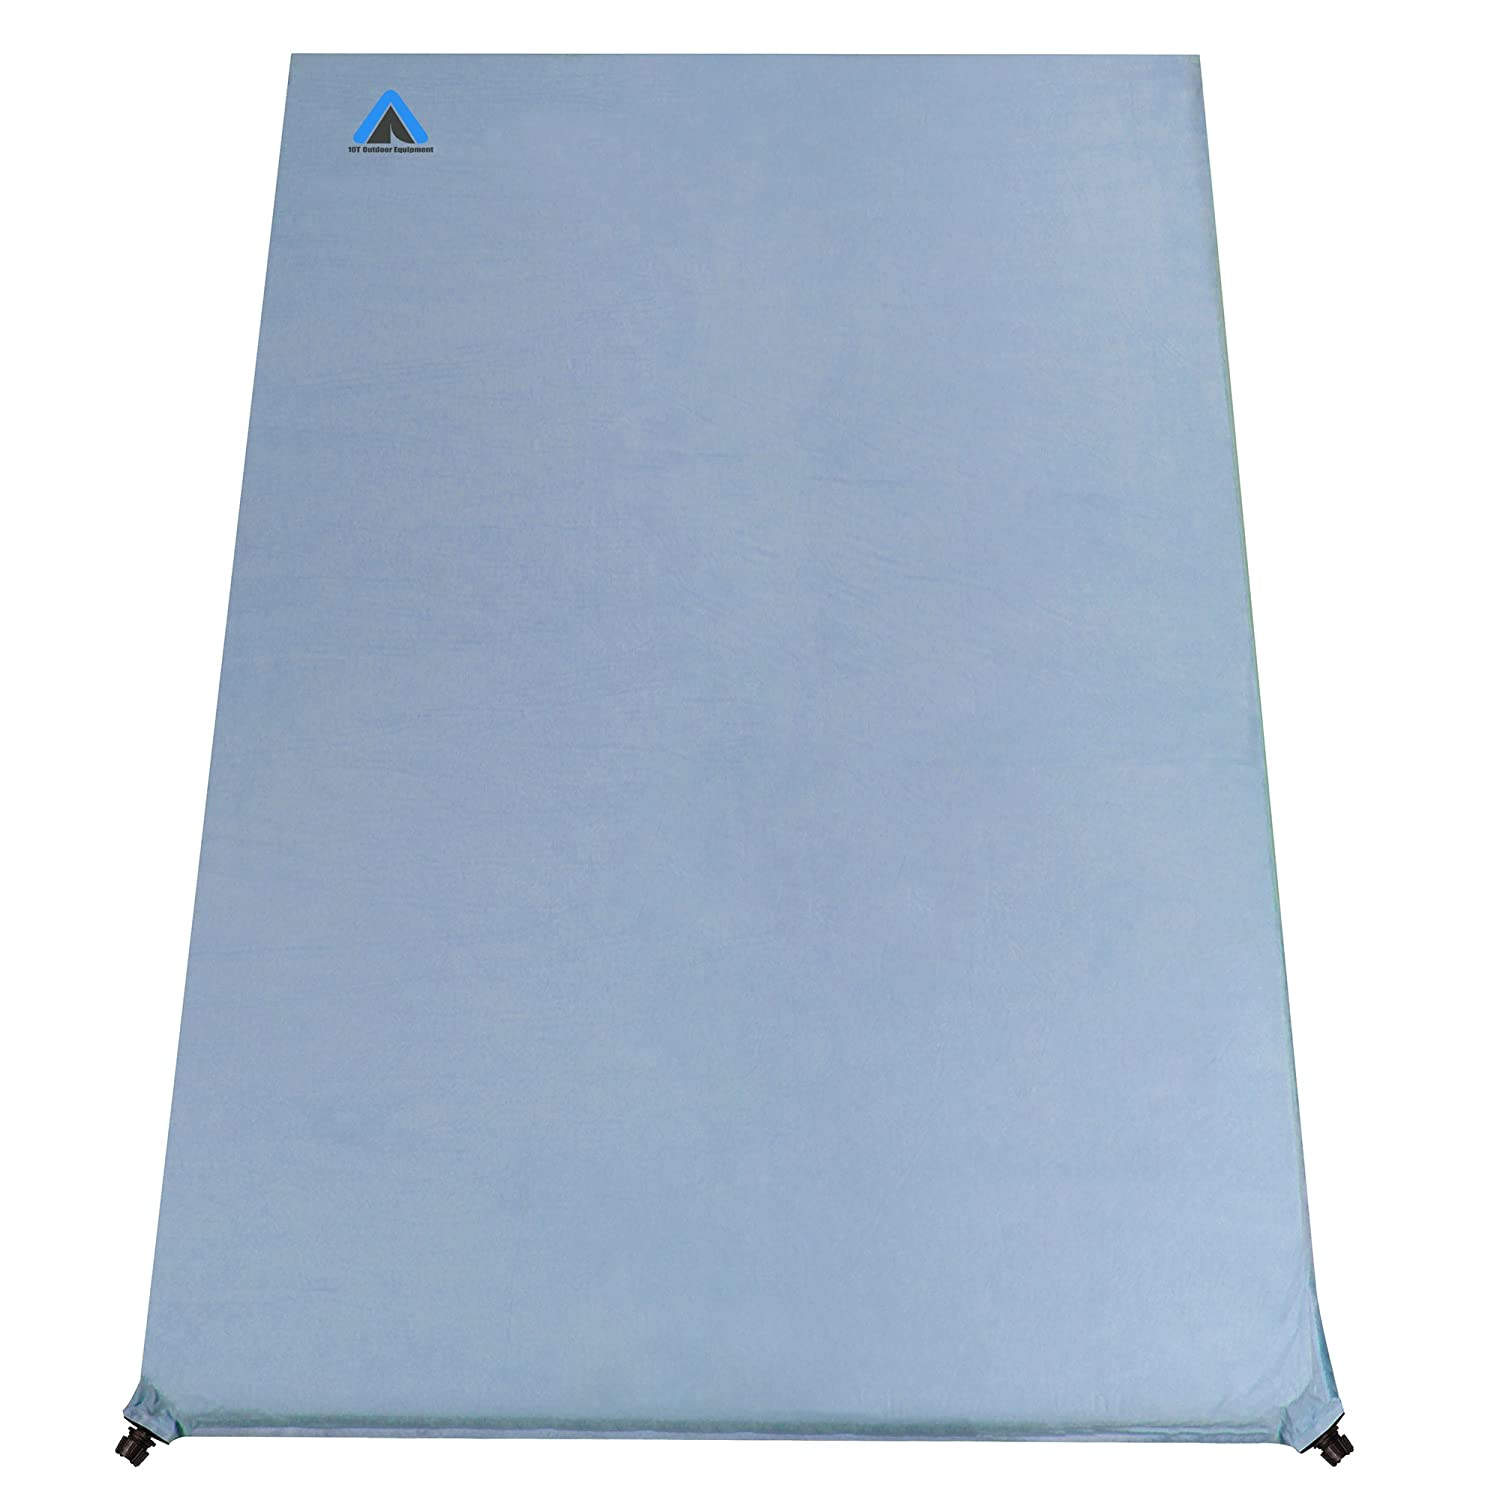 10T Outdoor Equipment Ben 800 Duo Selbstaufblasende Isomatte, Blau, 200 x 130 x 8 cm